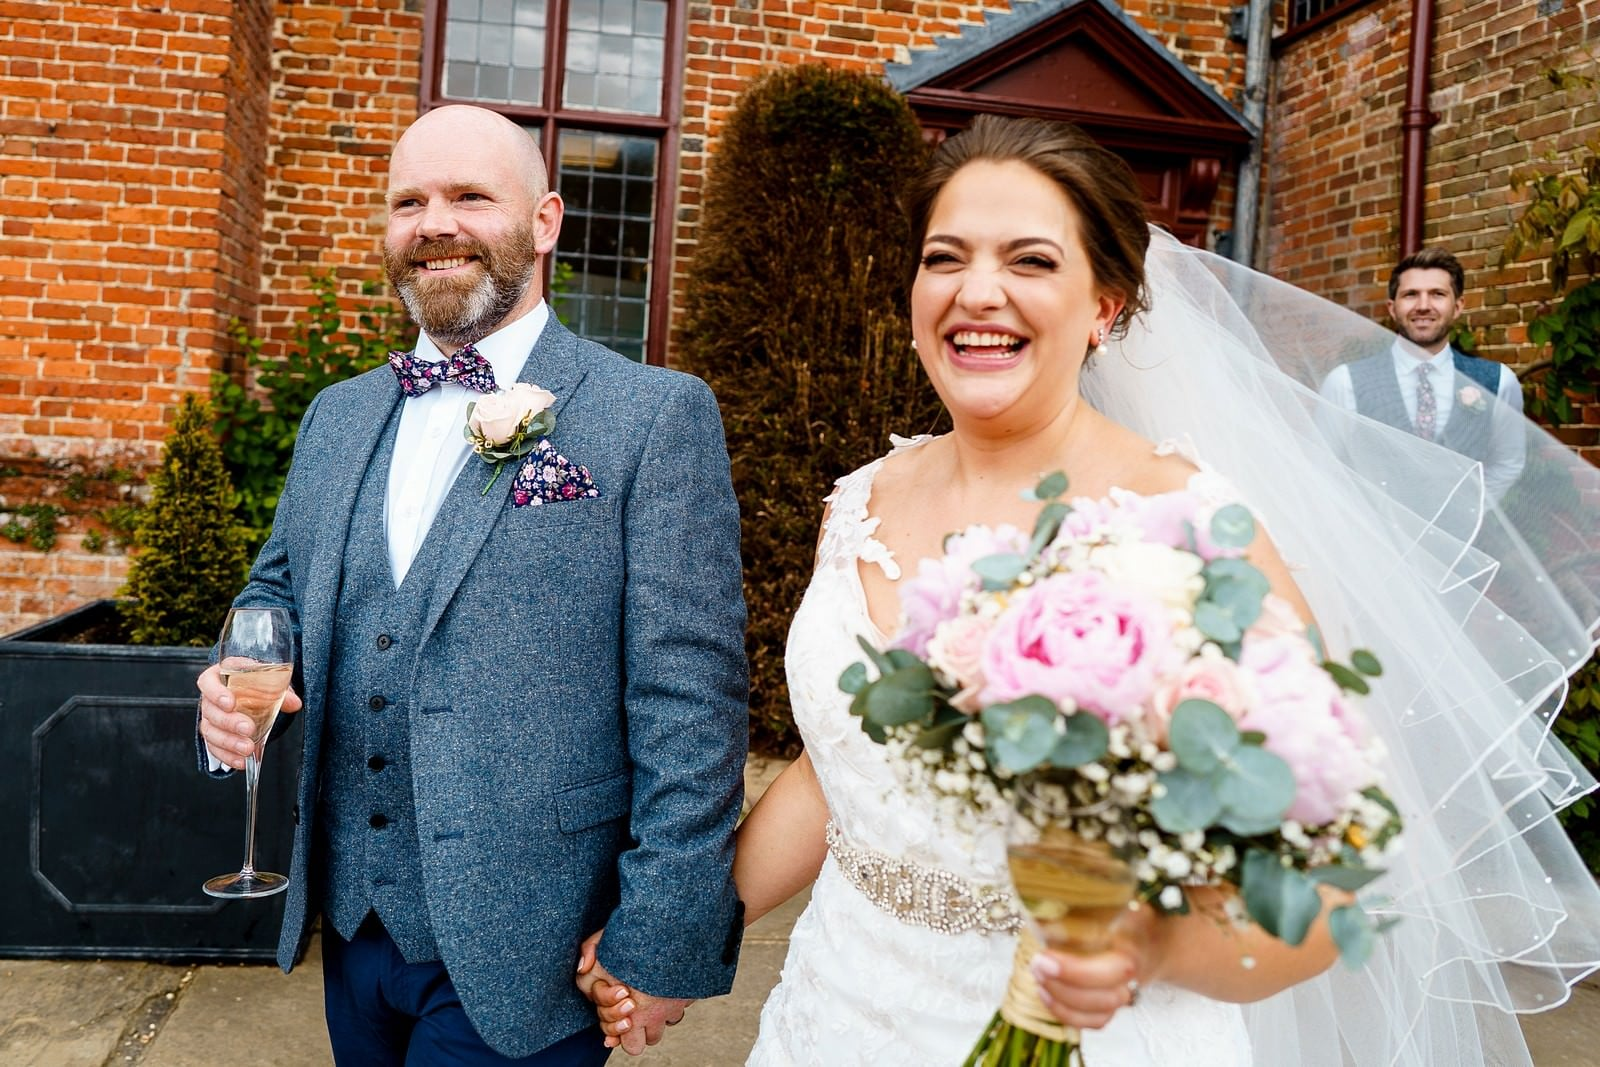 happy couple on their wedding day at ufton court 1